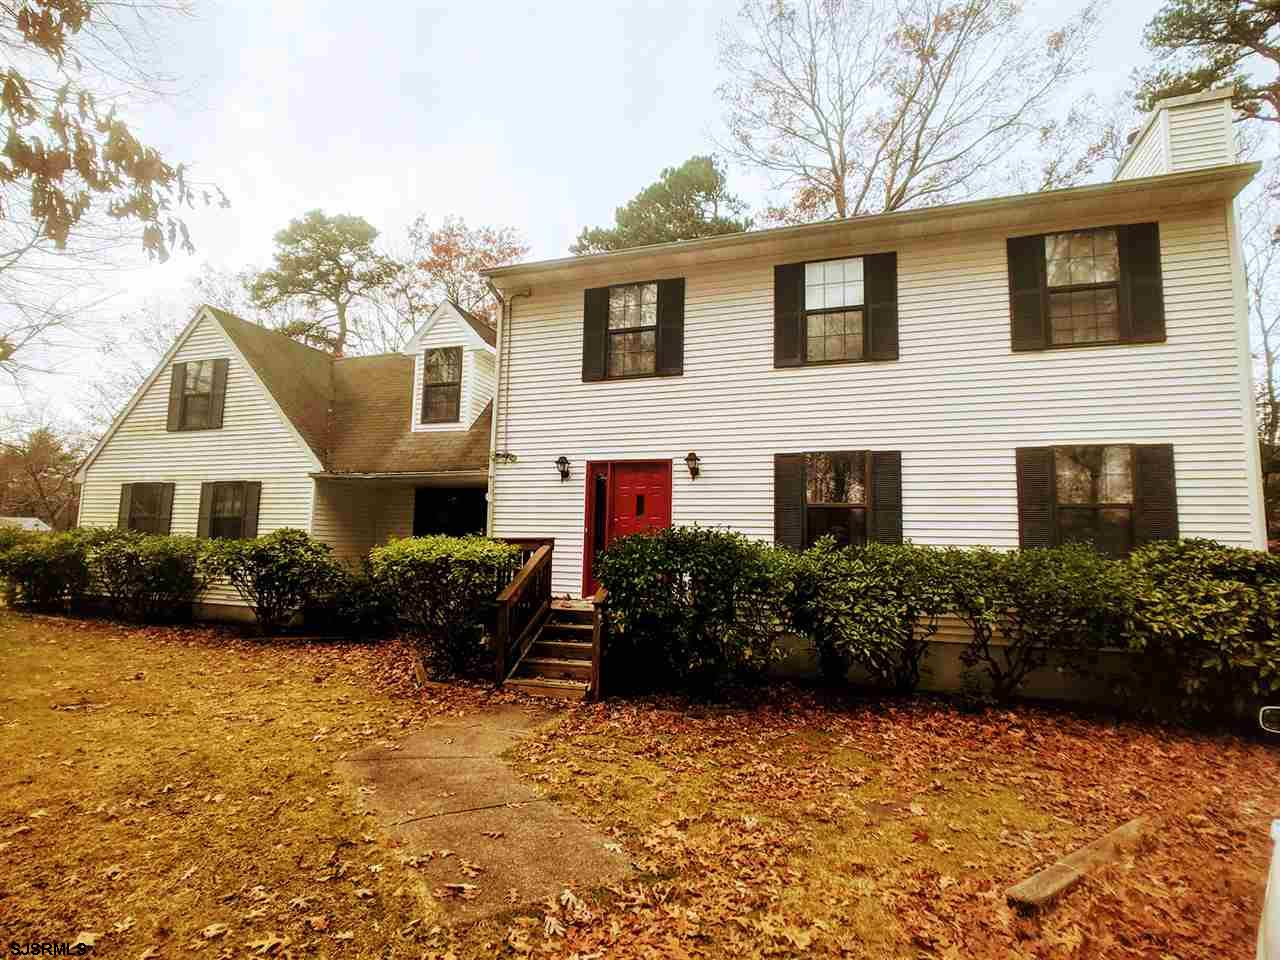 GREAT PROPERTY FOR IN-HOME BUSINESS OR SINGLE FAMILY HOME! This 4 bedroom, 2.5 bath Colonial style h